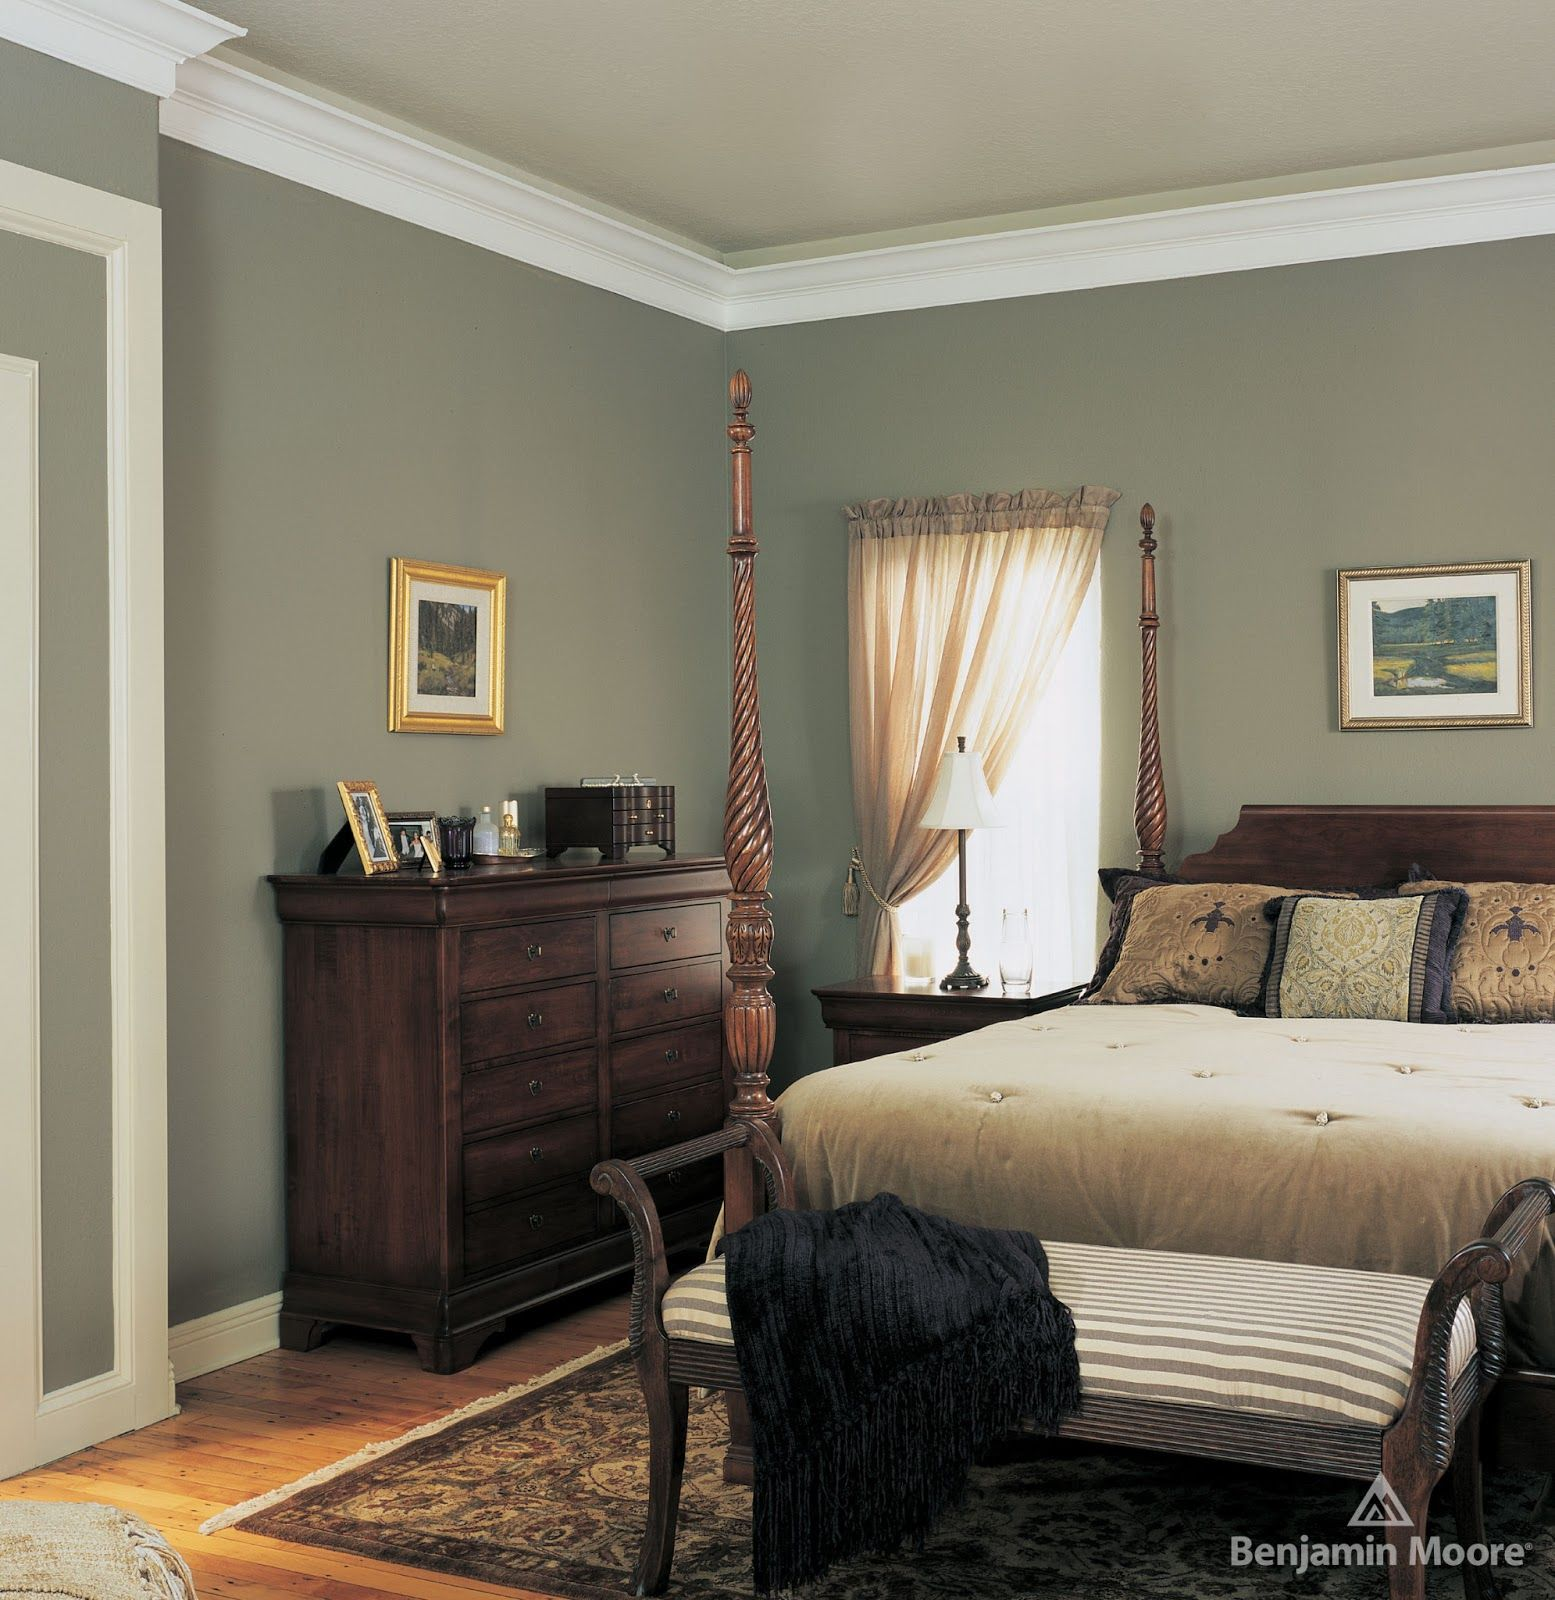 Factory Paint Decorating Benjamin Moore Regal Select Interior Heather Gray Walls